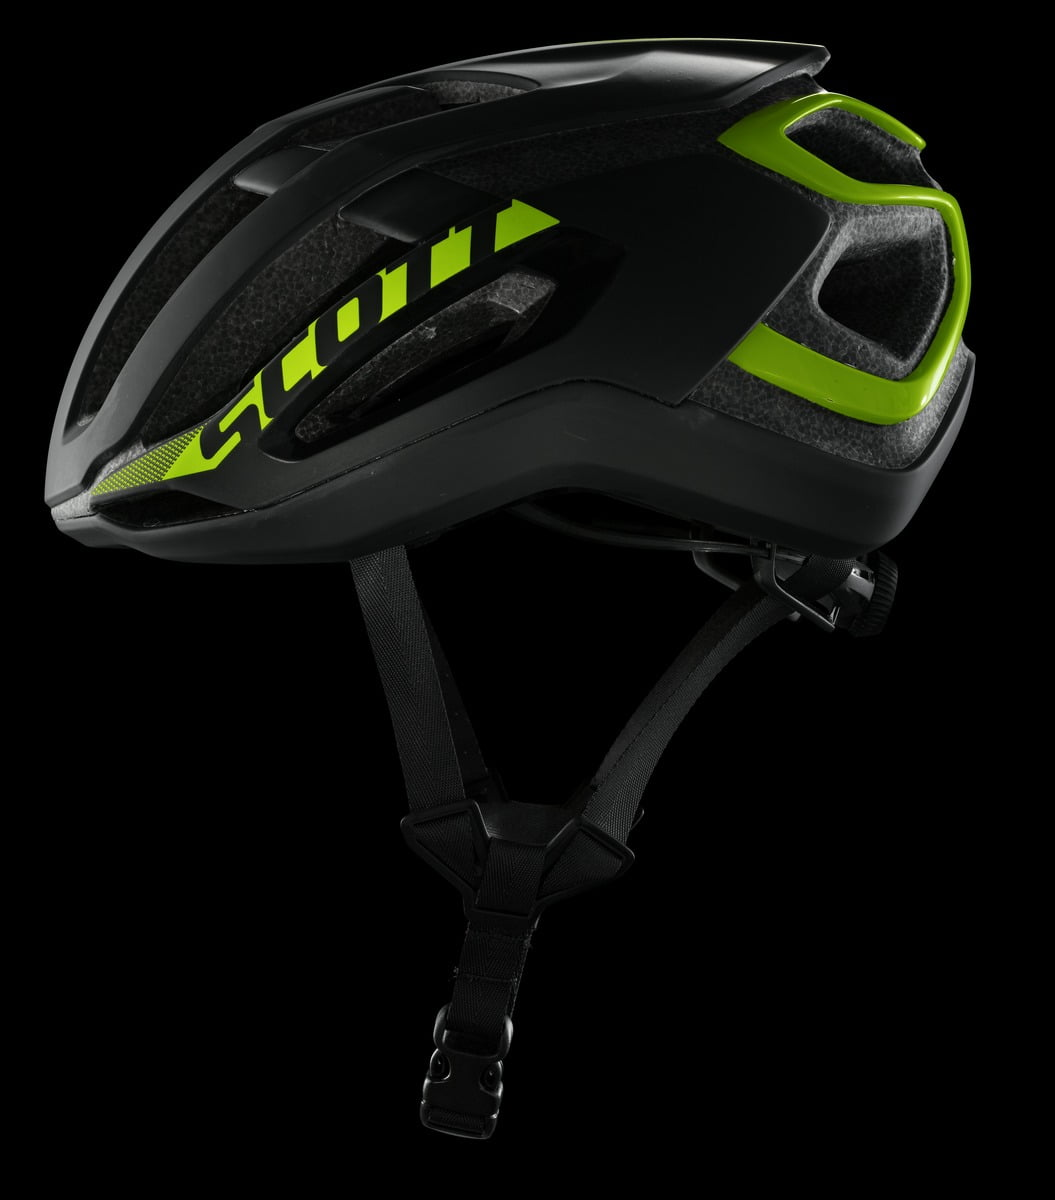 250023_Helmet-7-sideview_beauty shot